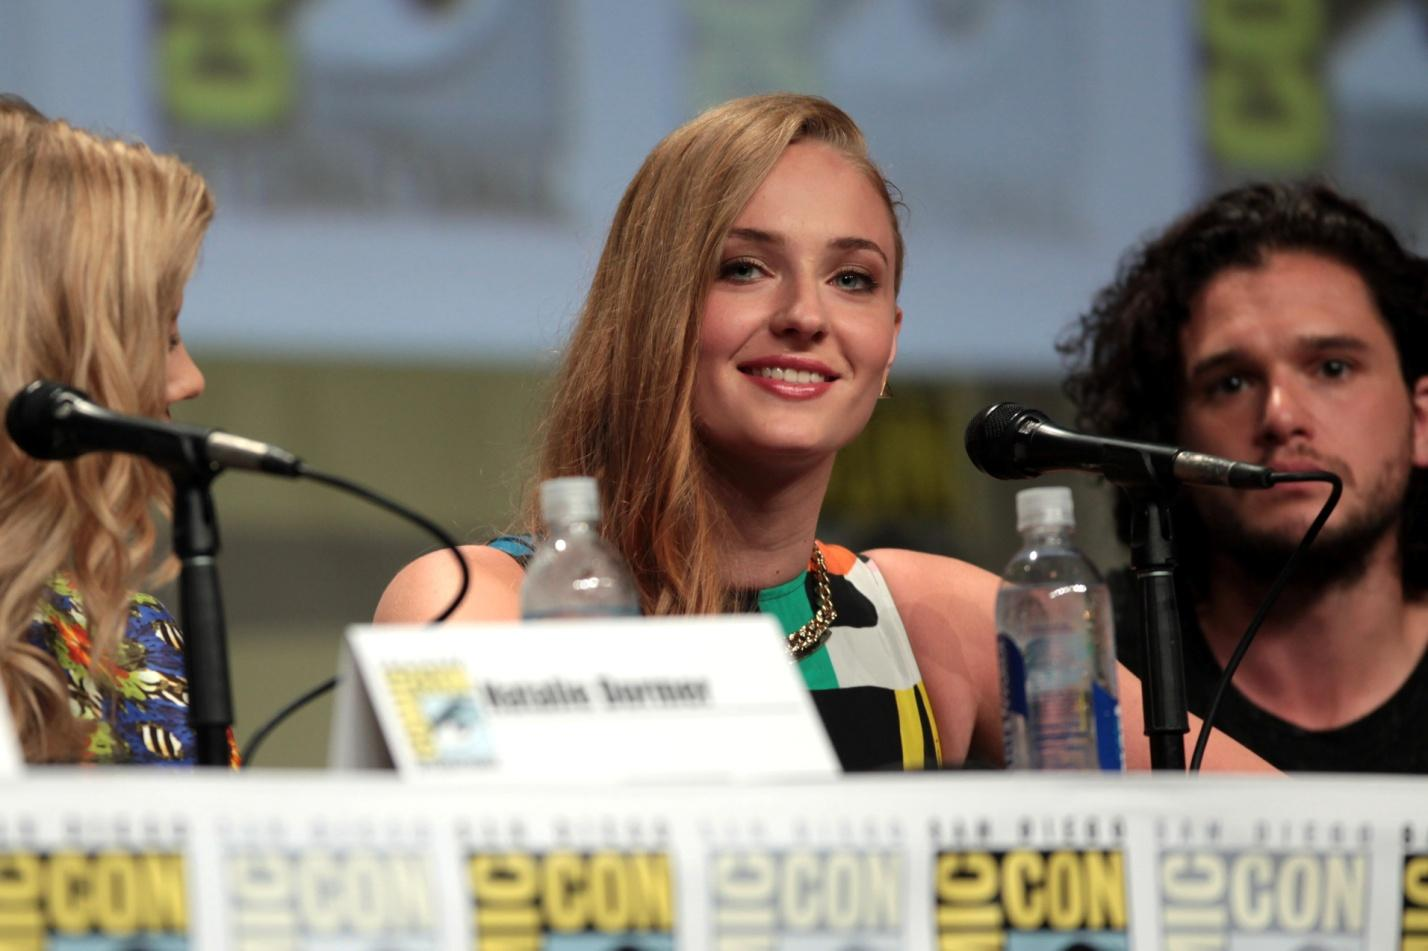 C:\Users\user\Desktop\Reacho\pics\Sophie_Turner_&_Kit_Harrington_SDCC_2014.jpg